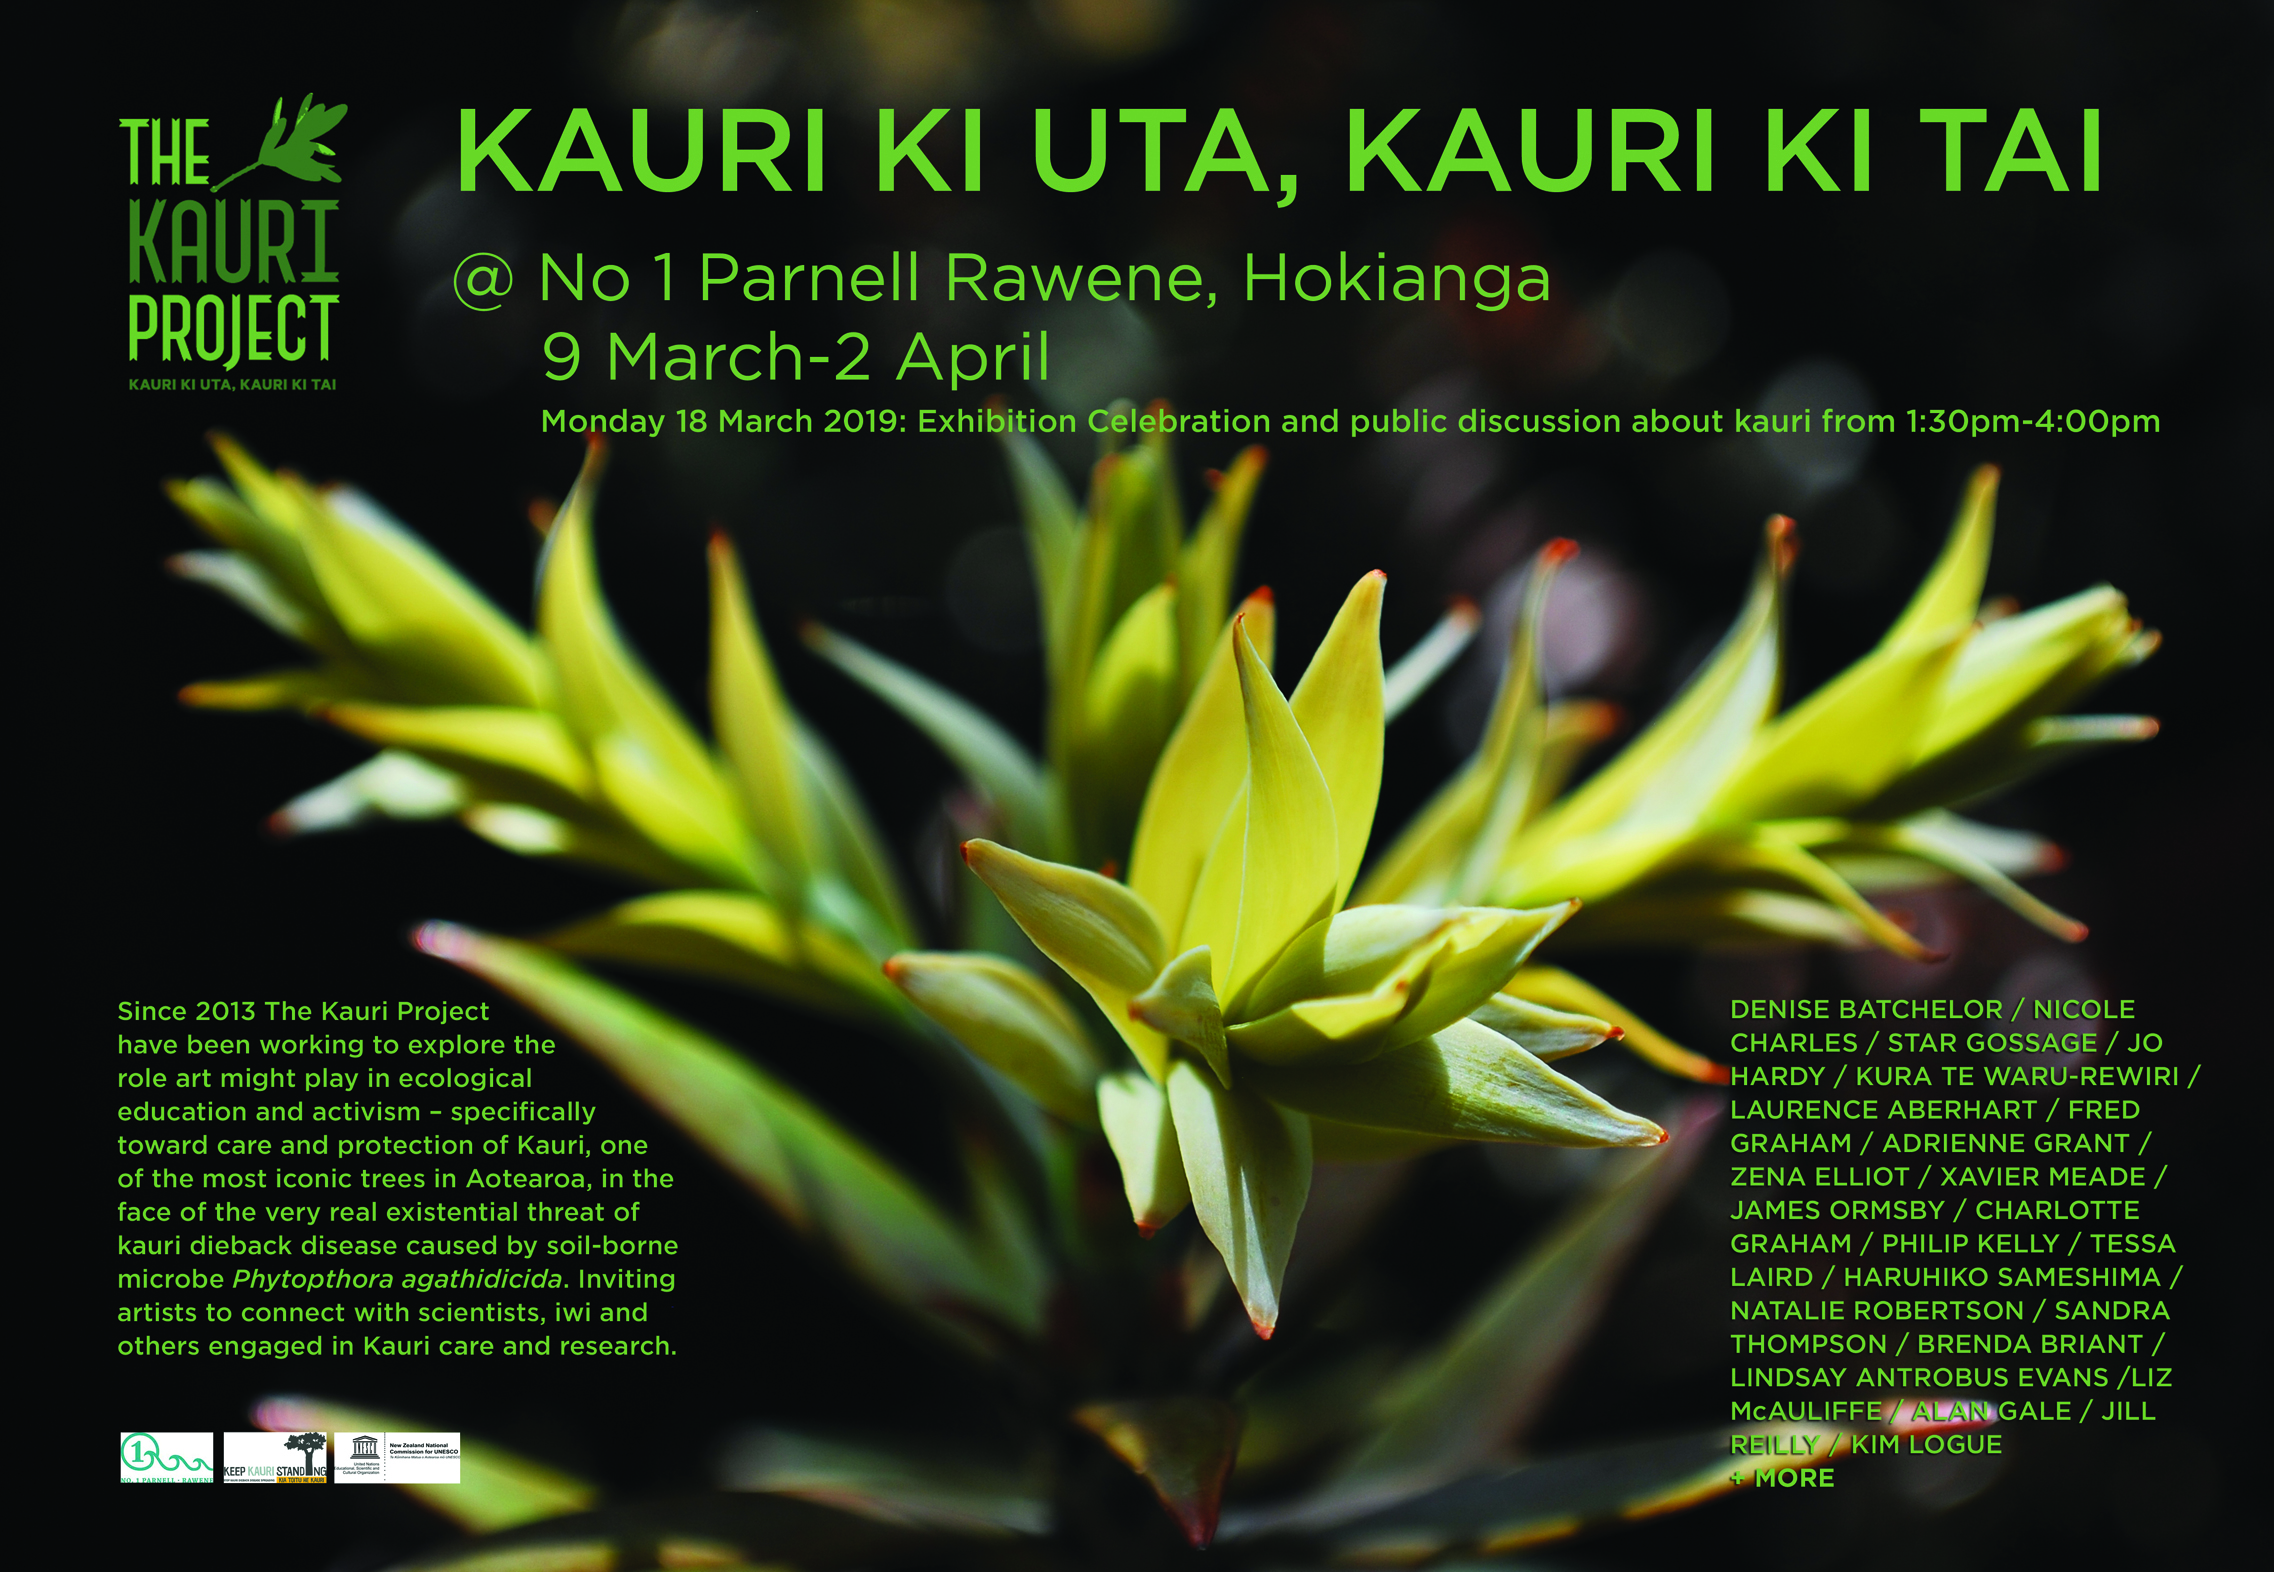 Latest exhibition - on now    Kauri ki ura, kauri ki tai: No.1 Parnell, Rawene